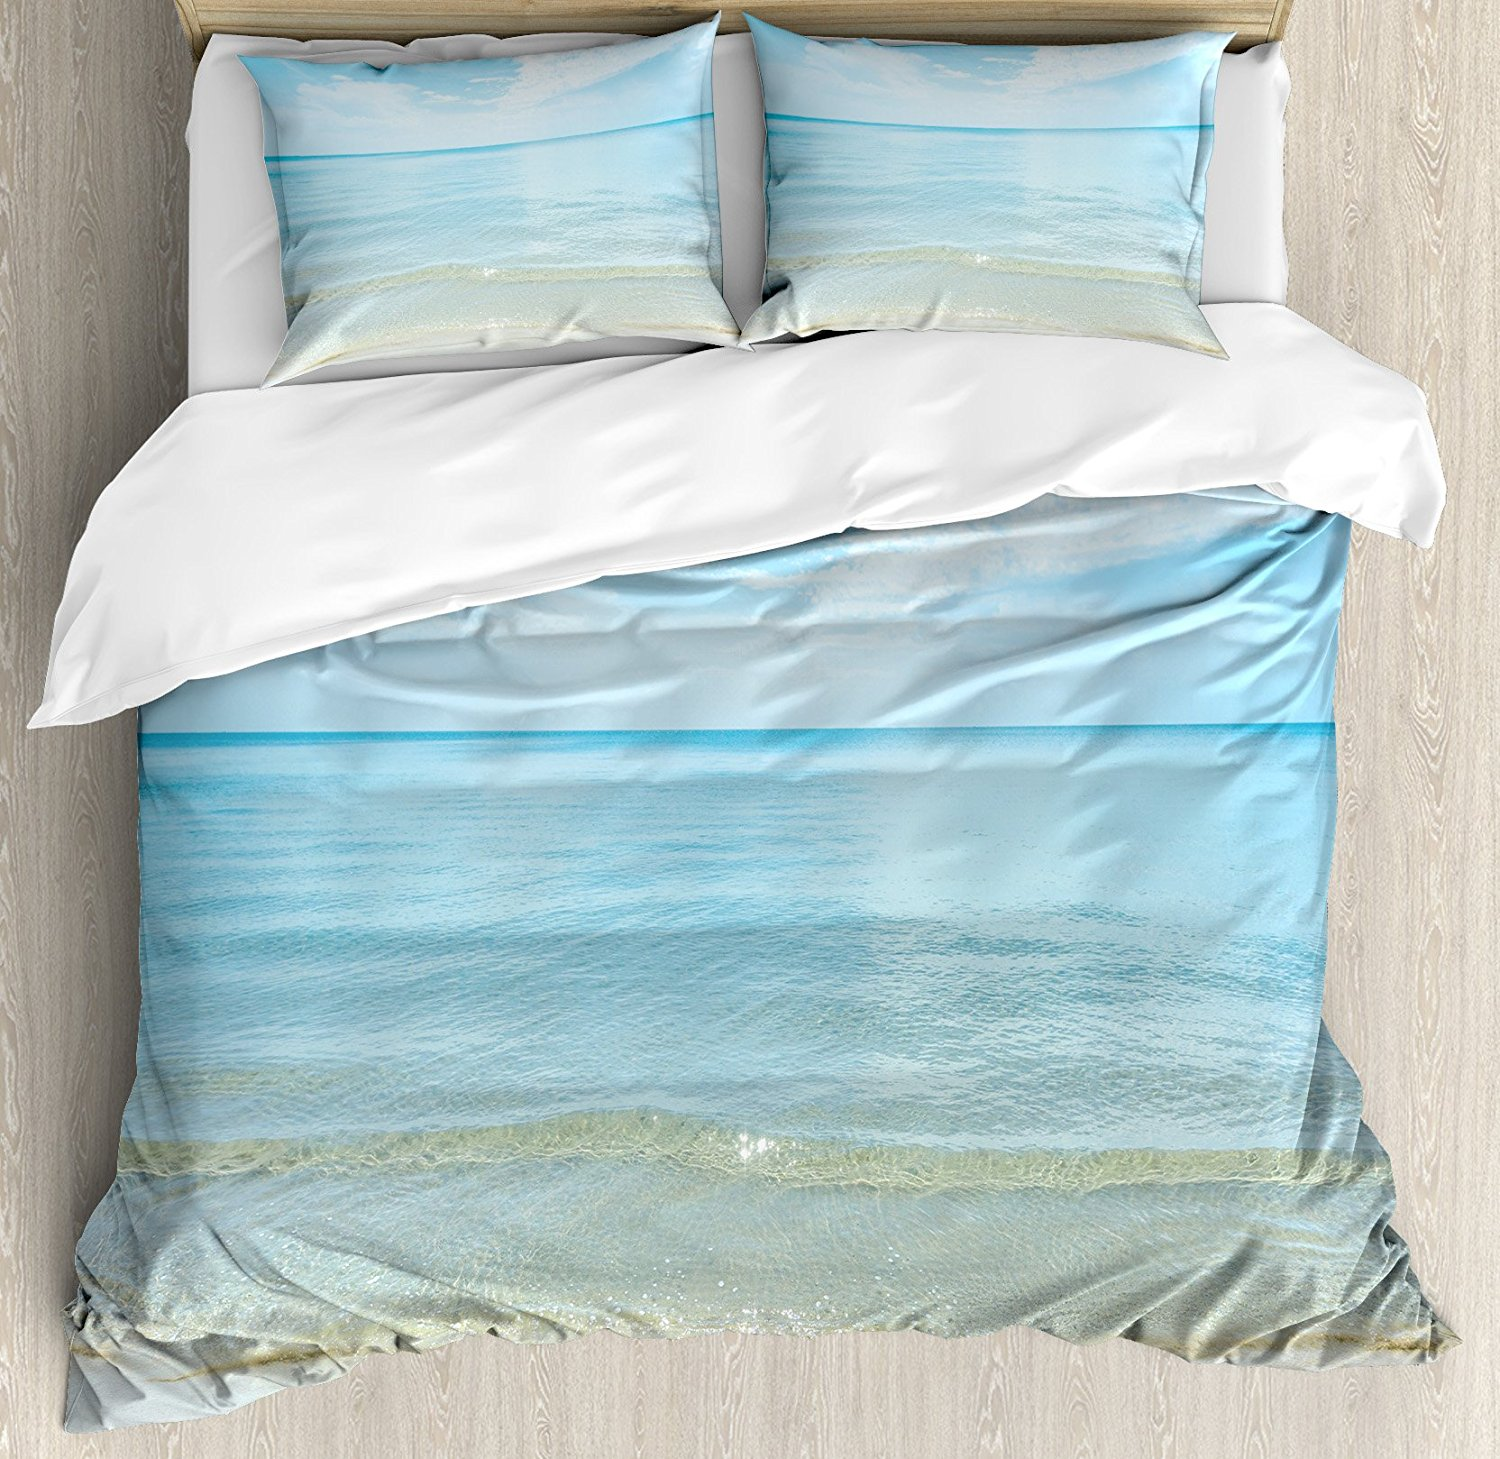 Ocean Duvet Cover Set Sunny Summer Day At The Sandy Beach Tranquil Calm Shore Sea Horizon Image Artprint 4 Piece Bedding Set 4 Piece Bedding Set Duvet Cover Setbedding Set Aliexpress